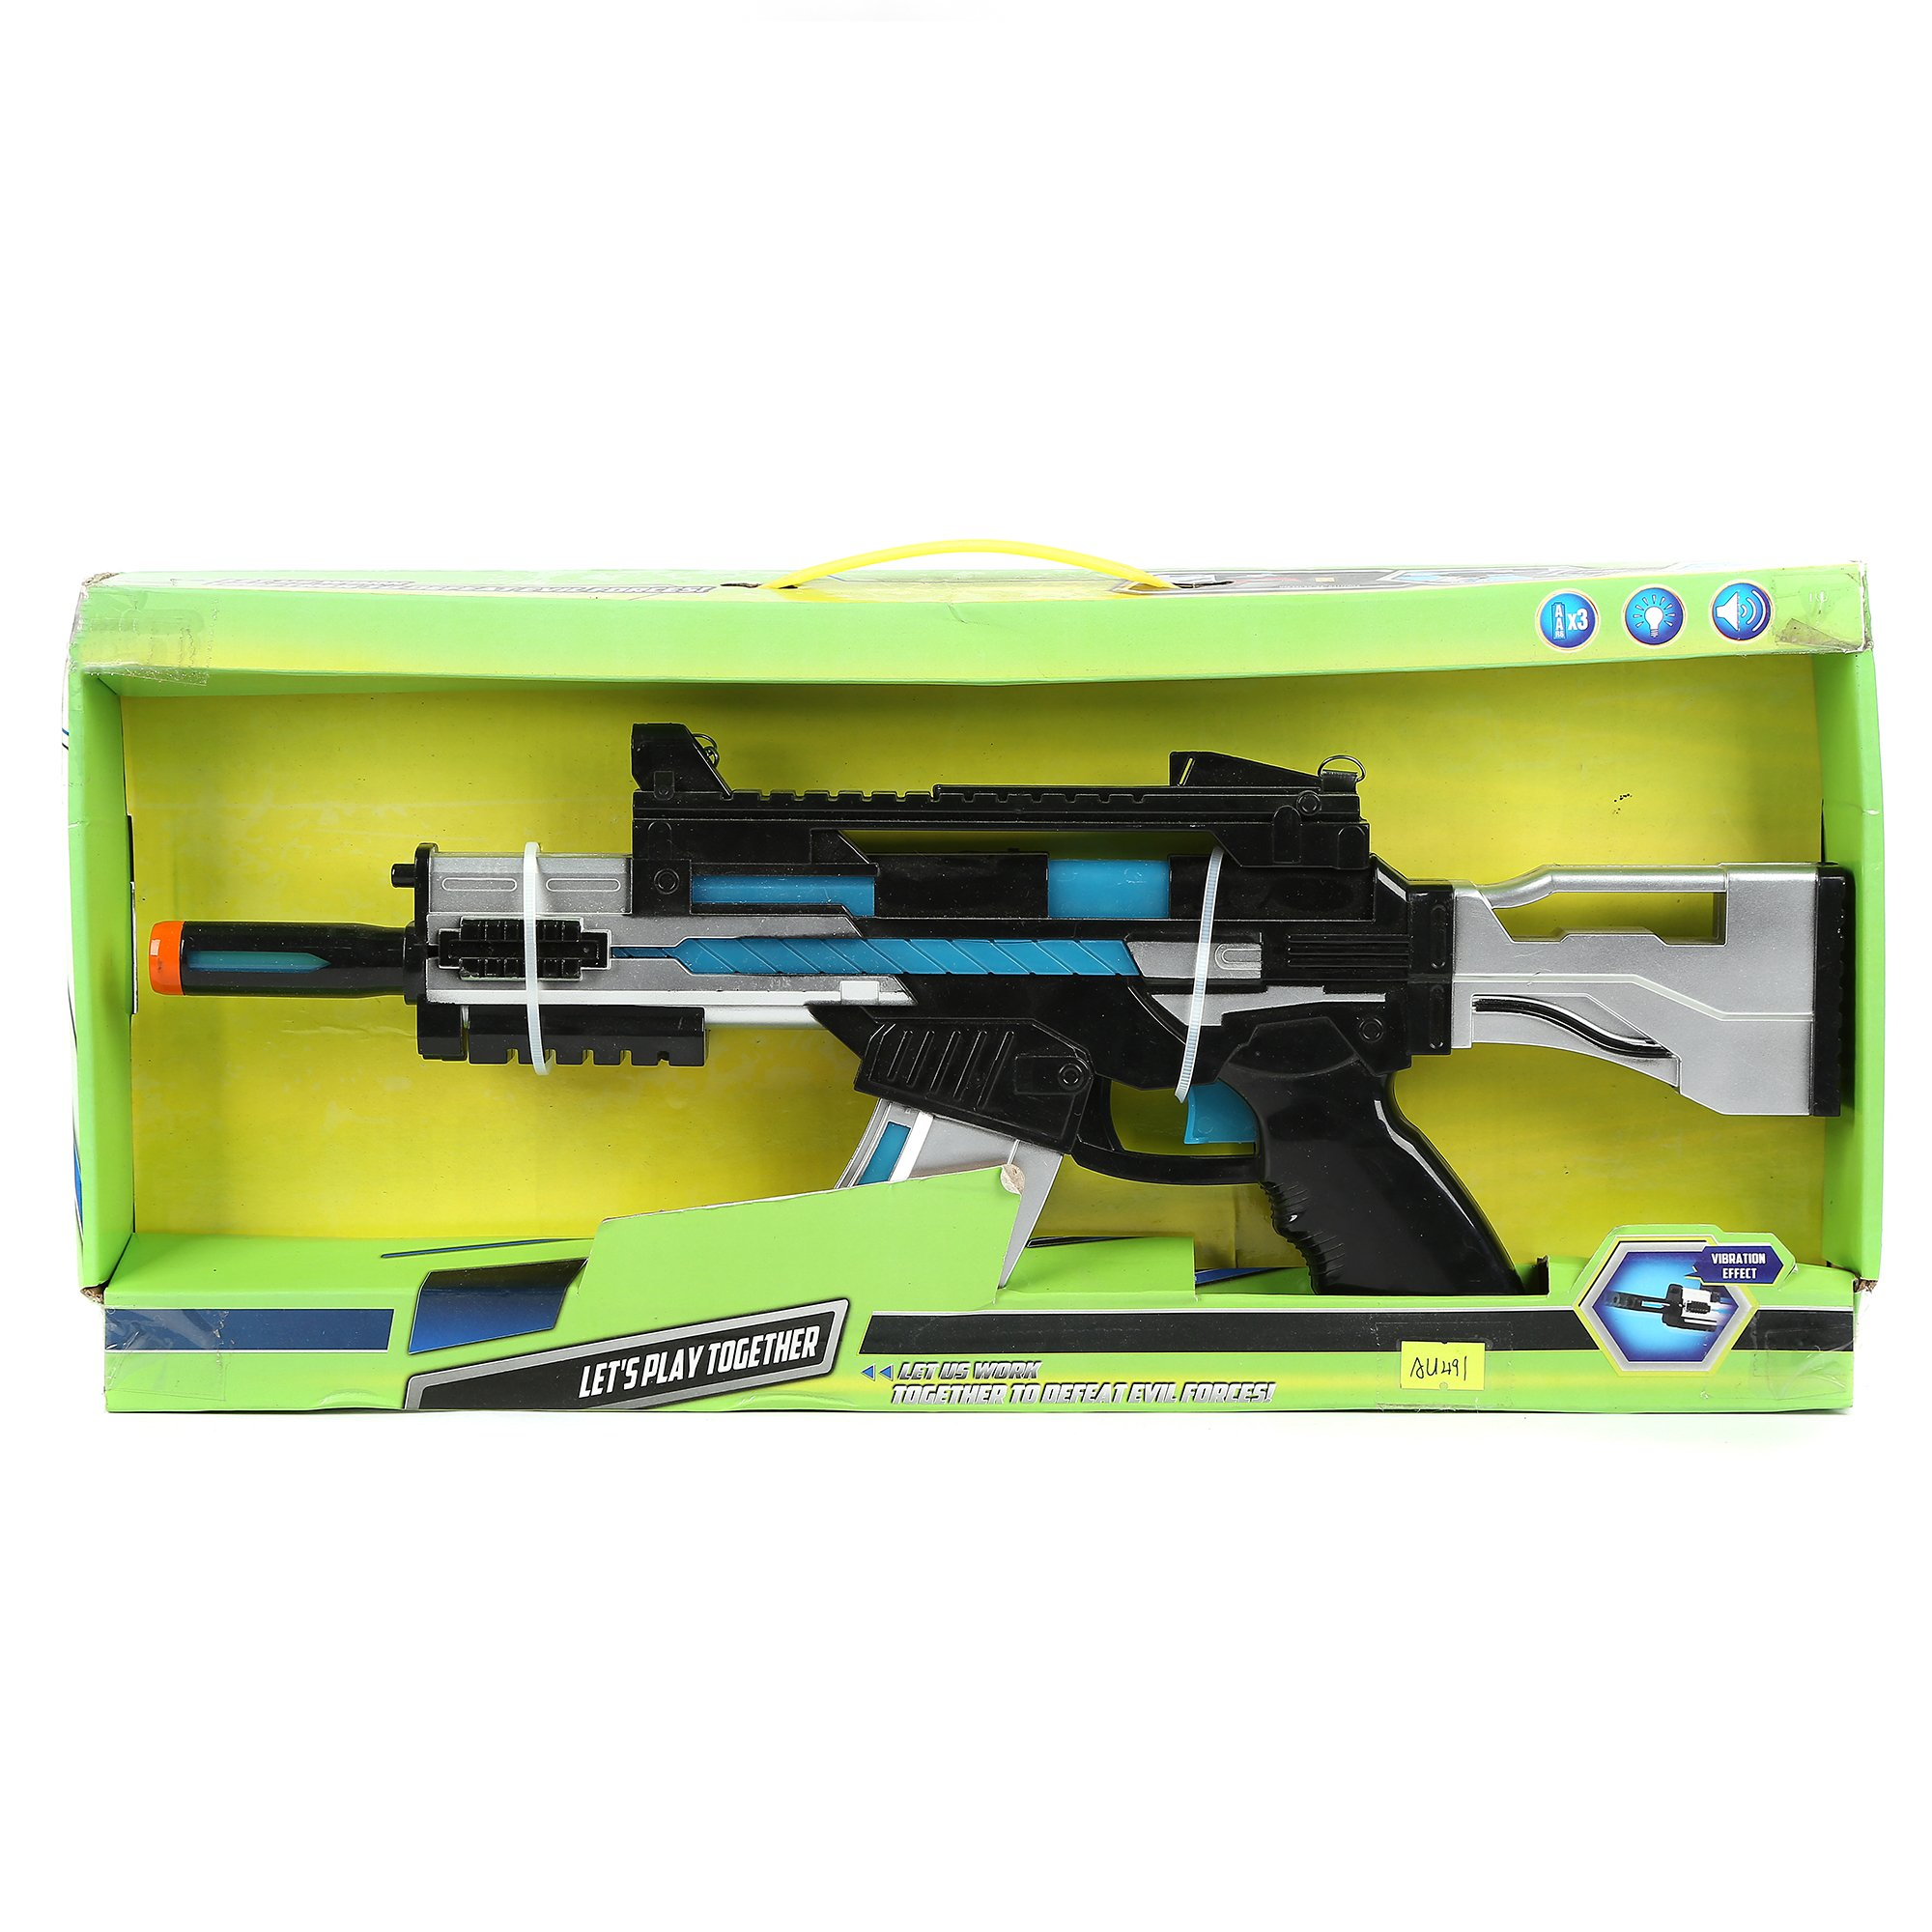 Fun Central AU491 17 Inch LED Light Up SW Blaster with Sounds Effect, LED Blaster Toy Gun, Light Up Blaster Gun for kids, Blaster Gun - for Party Favors, Gifts, Prizes, Rewards, Giveaways by Fun Central (Image #3)